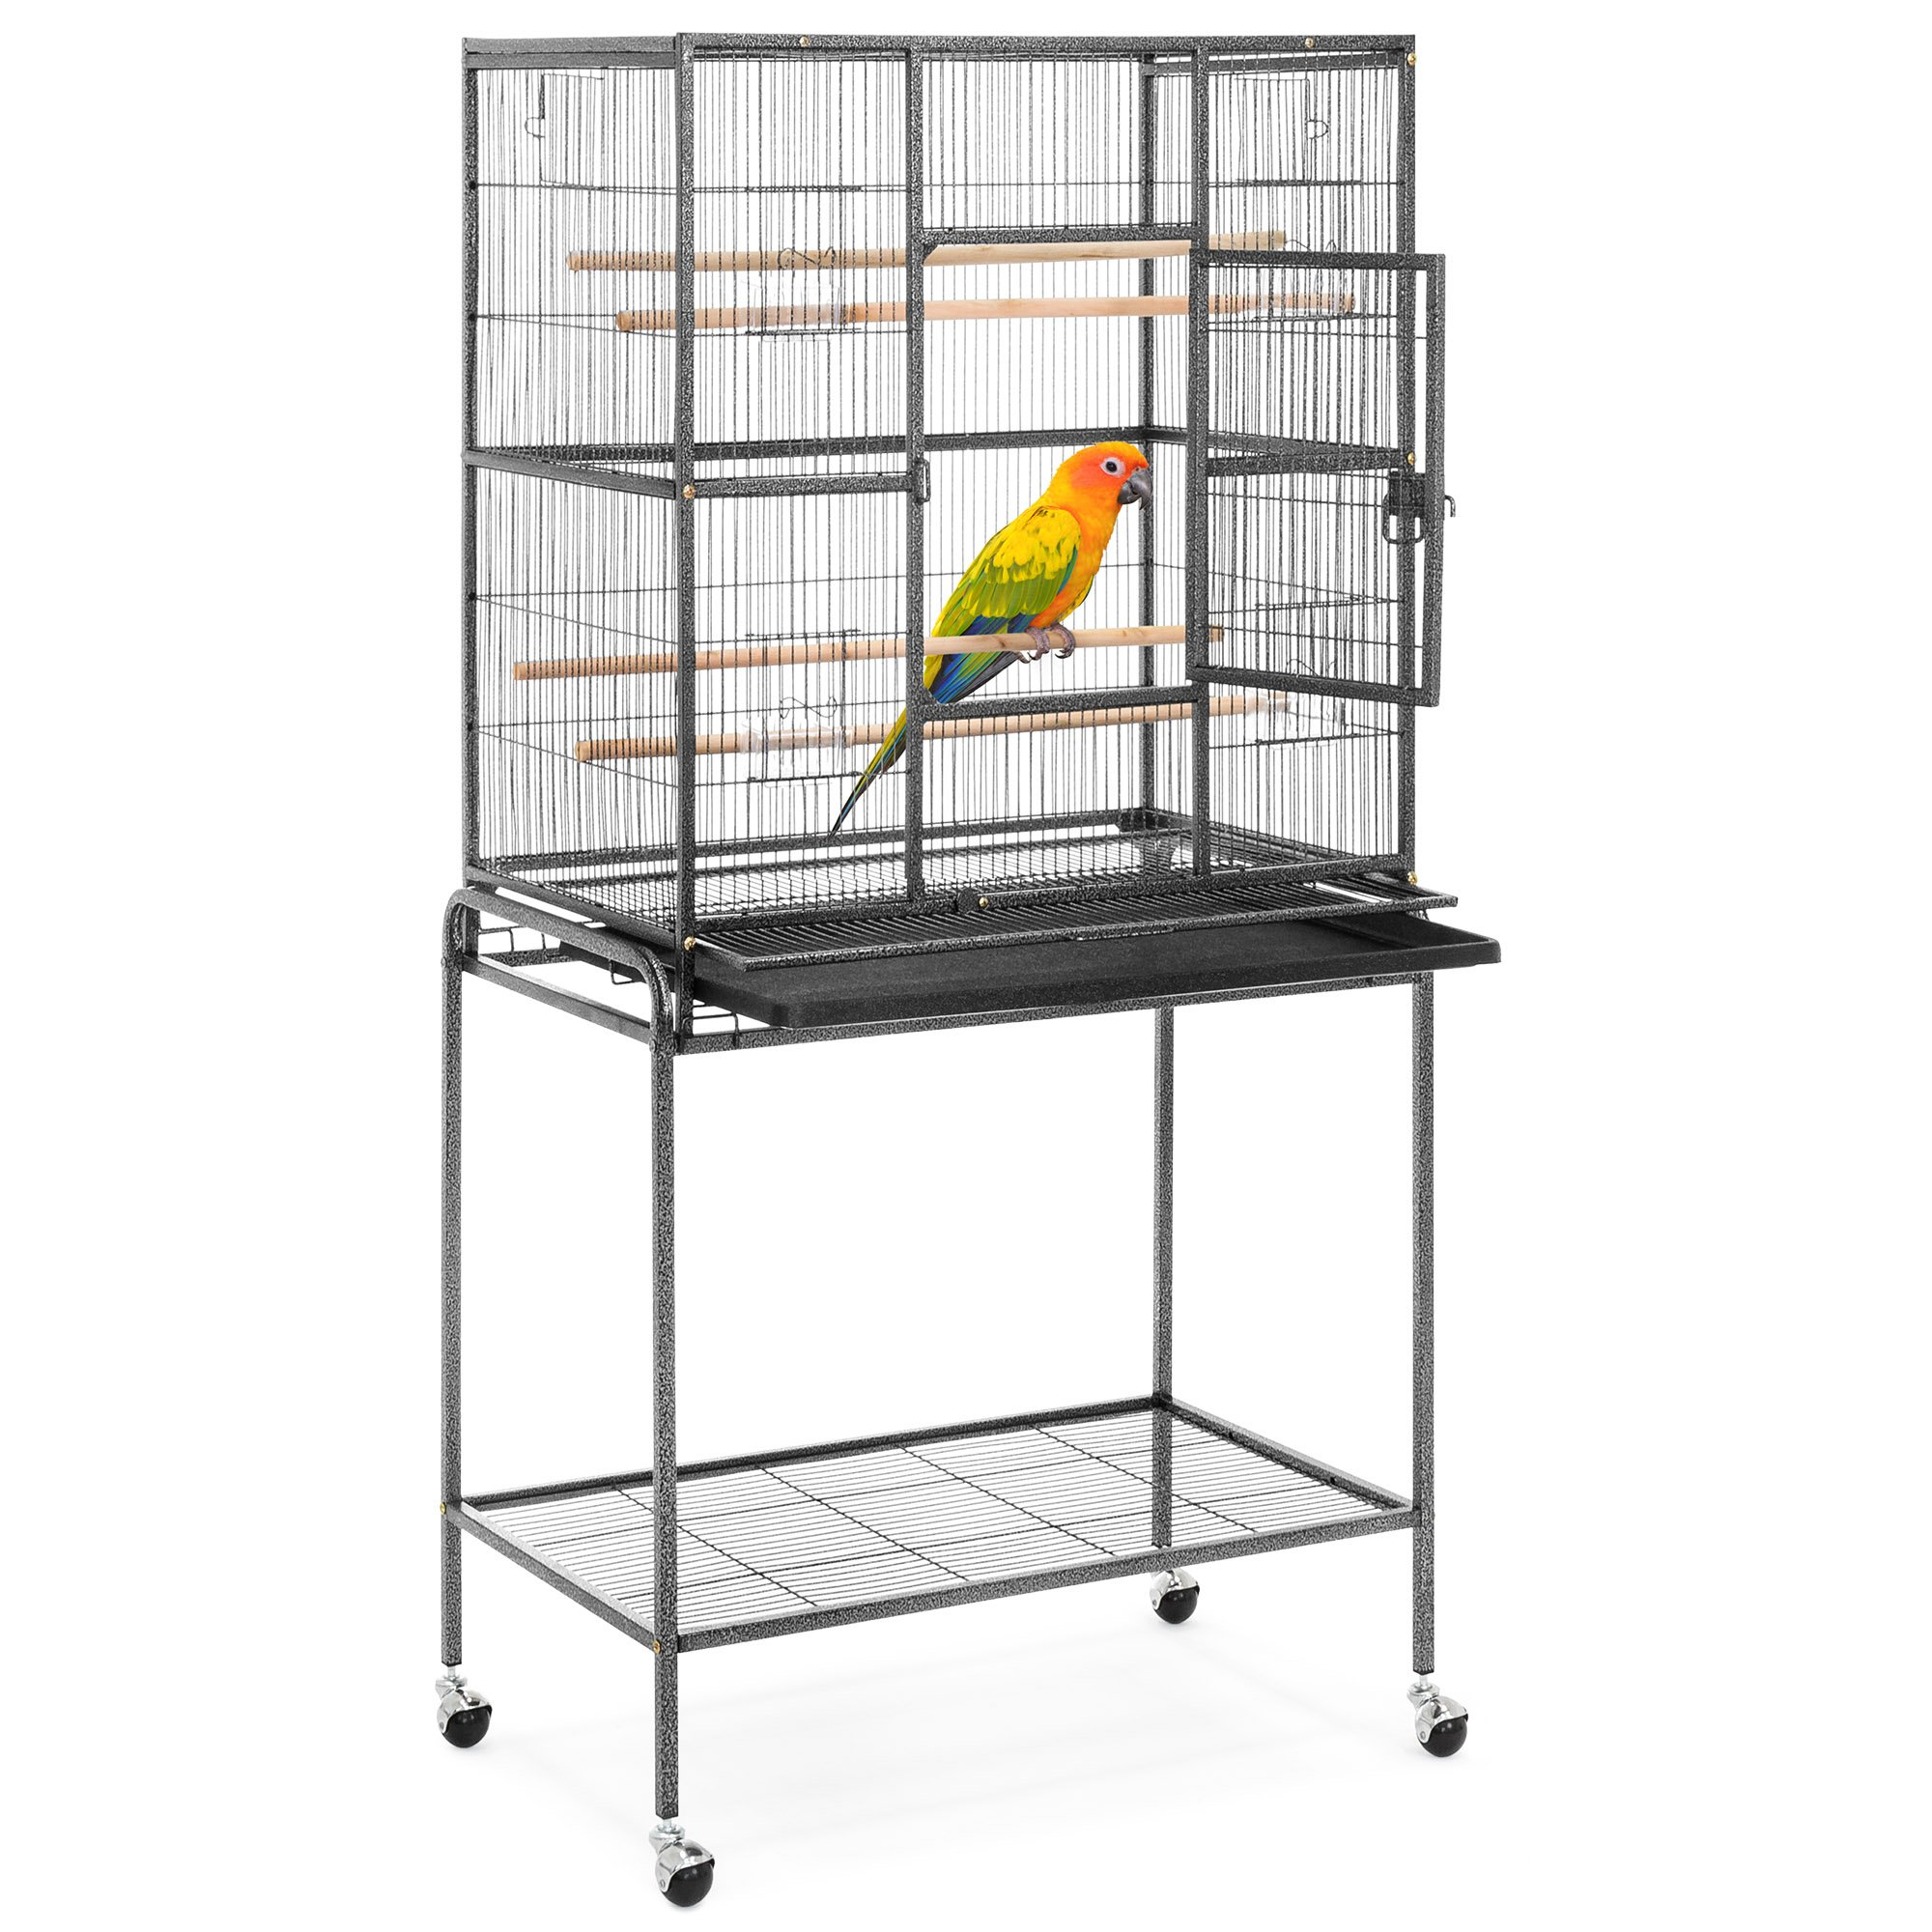 Best Choice Products 53in Portable Iron Pet Parrot Bird Cage w/Rolling Stand, 2 Wooden Perches, 4 Feeding Bowls & Doors by Best Choice Products